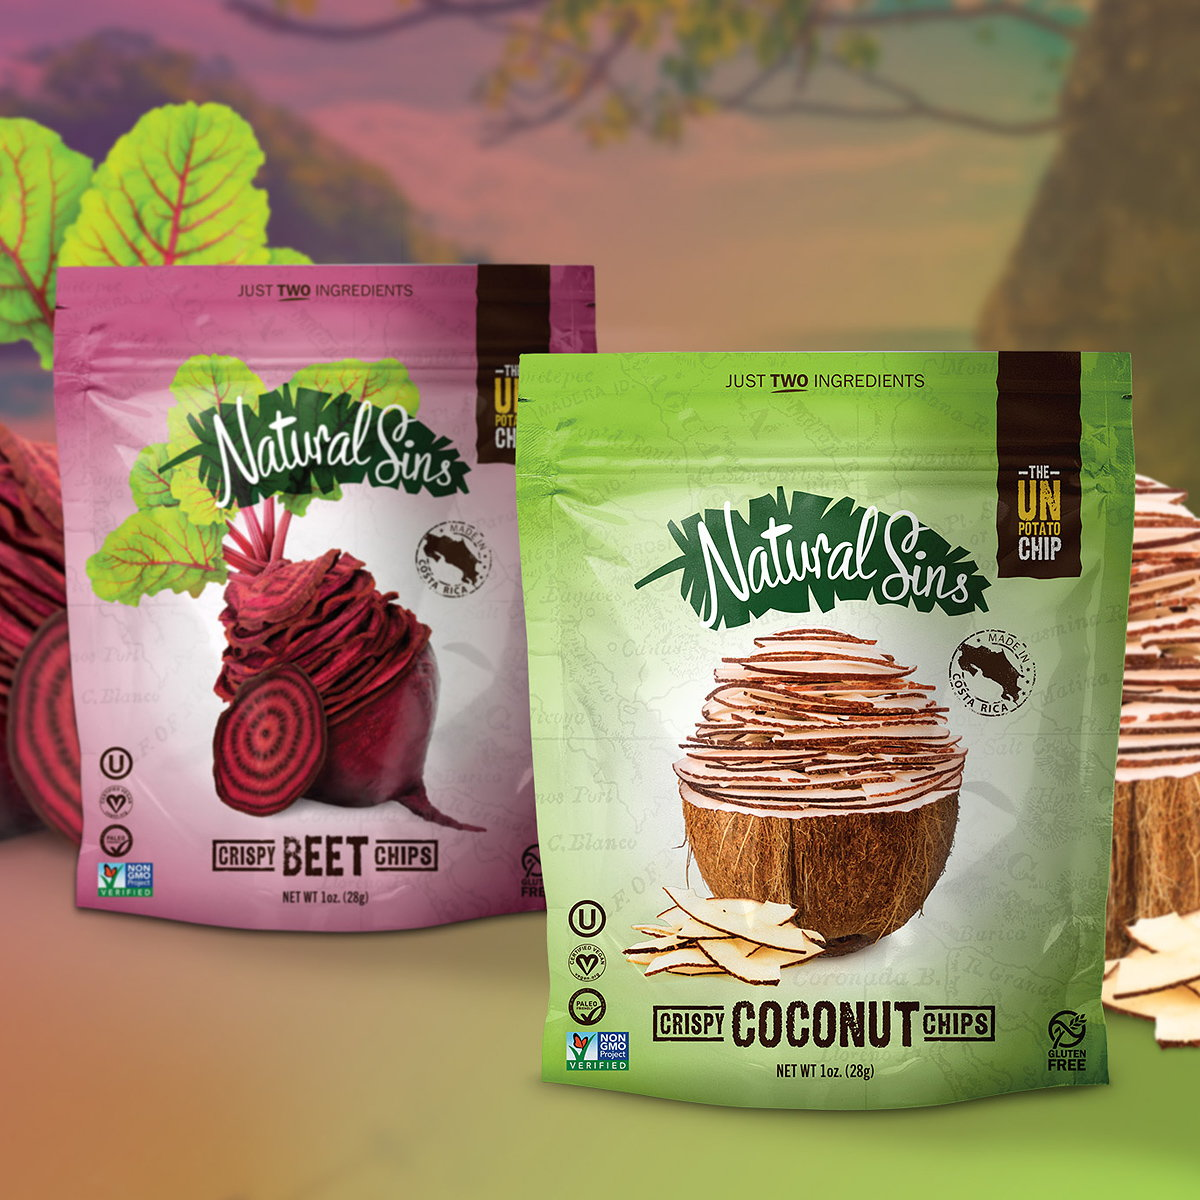 Packaging Design News - Page 4